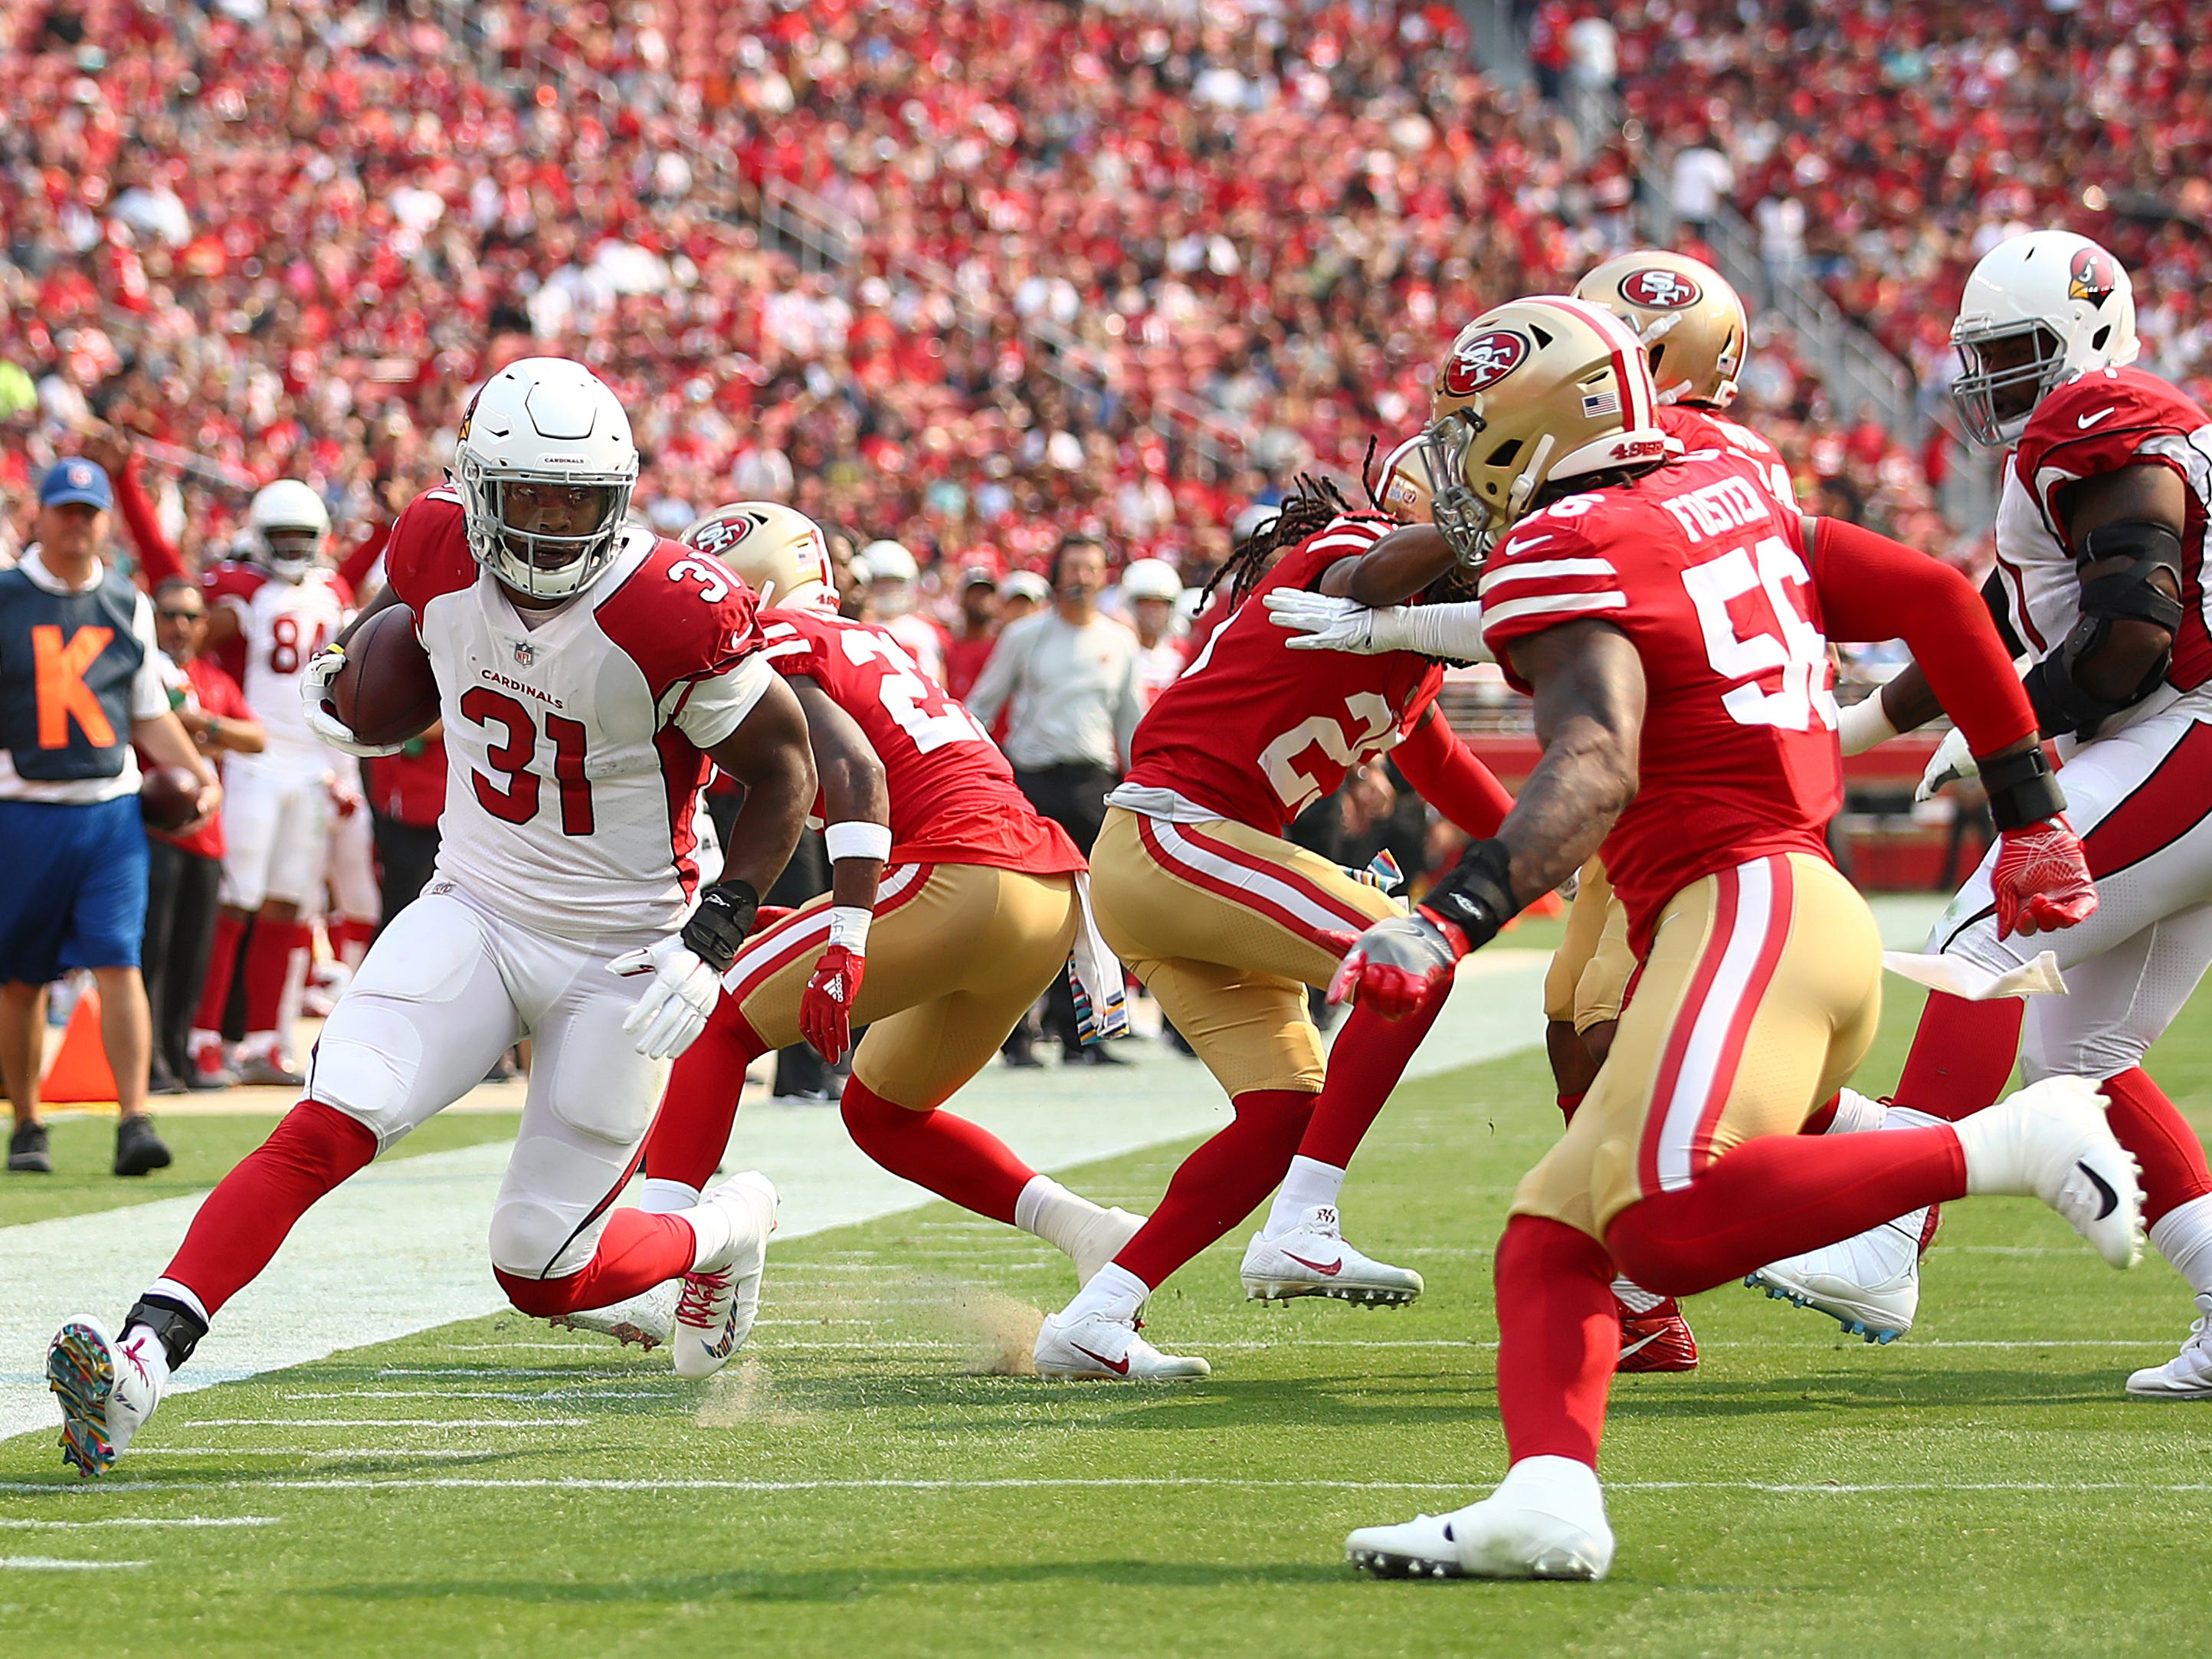 Arizona Cardinals running back David Johnson (31) runs against the San Francisco 49ers during the first half of an NFL football game in Santa Clara, Calif., Sunday, Oct. 7, 2018.